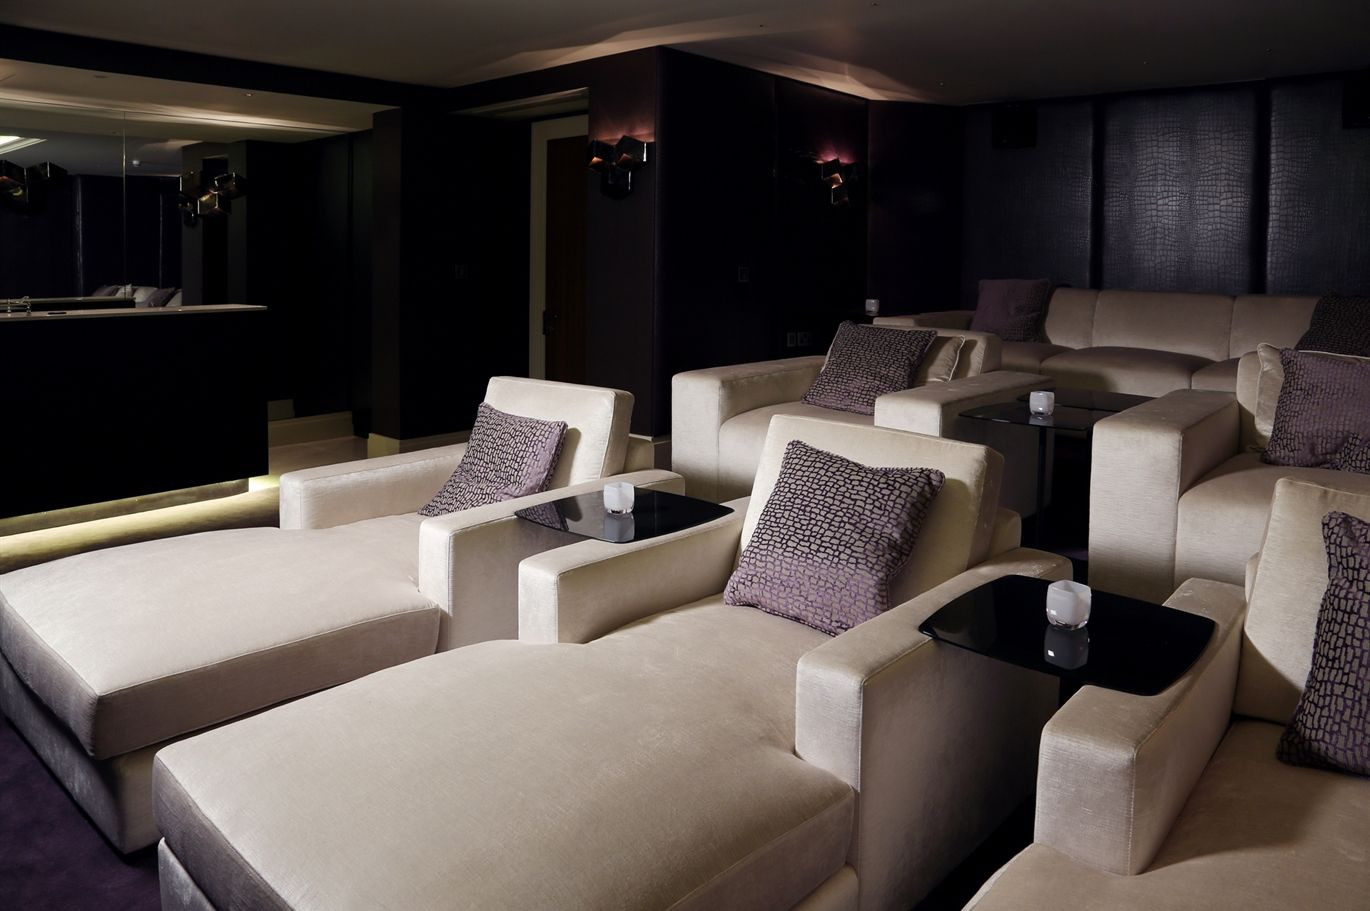 Theatre room sofa home theater room furniture decorating for Theatre room furniture